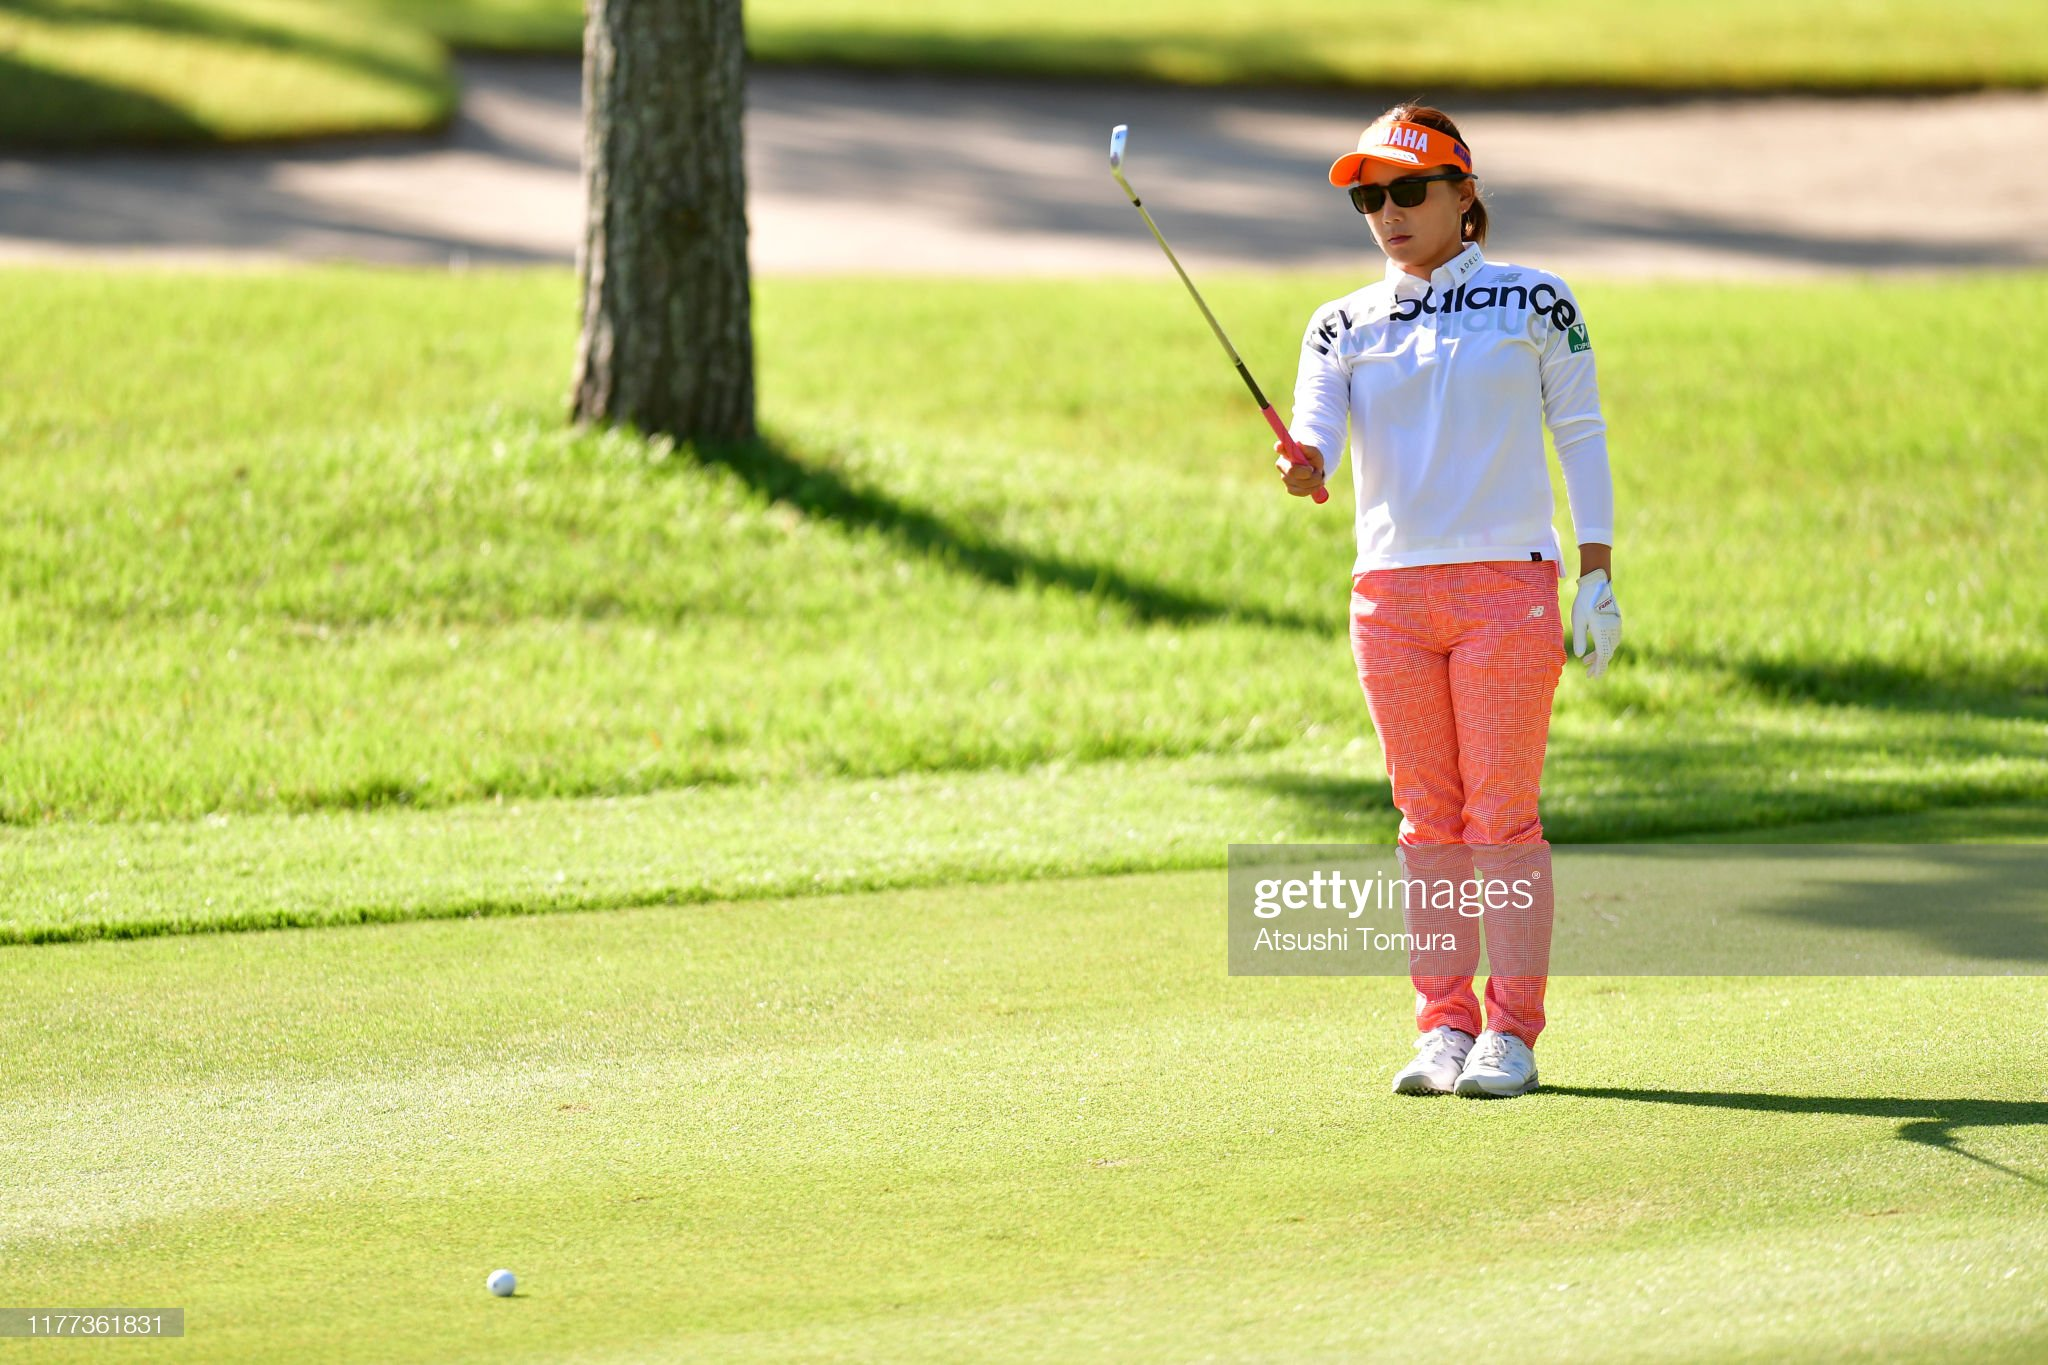 https://media.gettyimages.com/photos/chie-arimura-of-japan-prepares-for-her-second-shot-on-the-1st-hole-picture-id1177361831?s=2048x2048